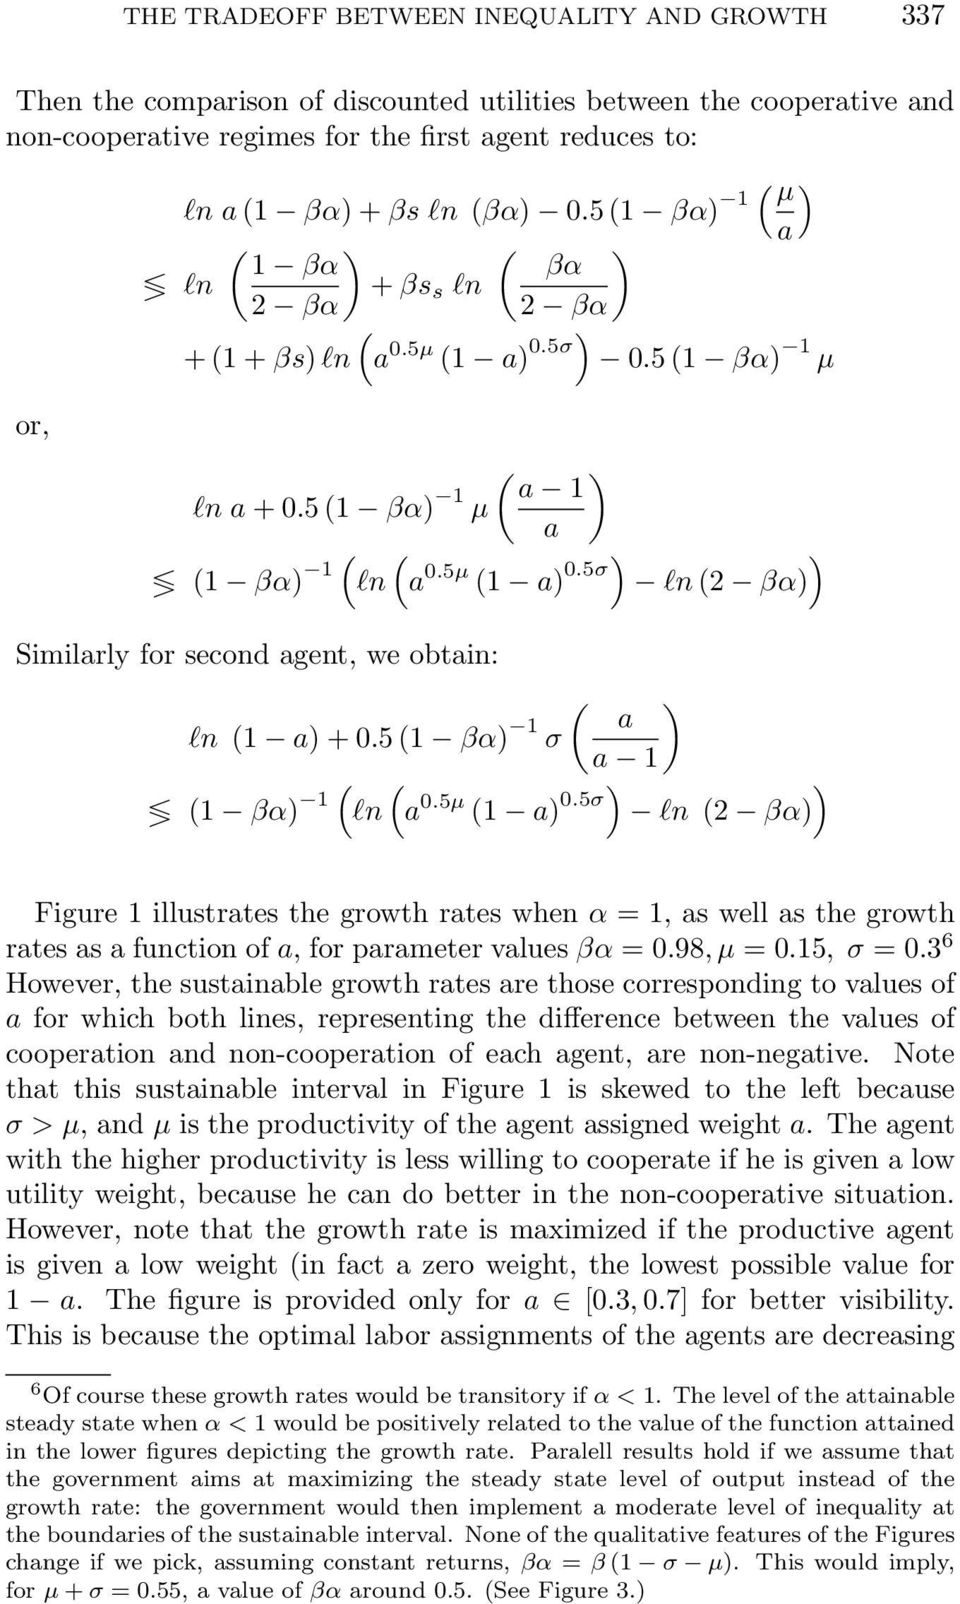 5 1 0.5σ ln 2 βα Figure 1 illustrtes the growth rtes when α = 1, s well s the growth rtes s function of, for prmeter vlues βα = 0.98, = 0.15, σ = 0.